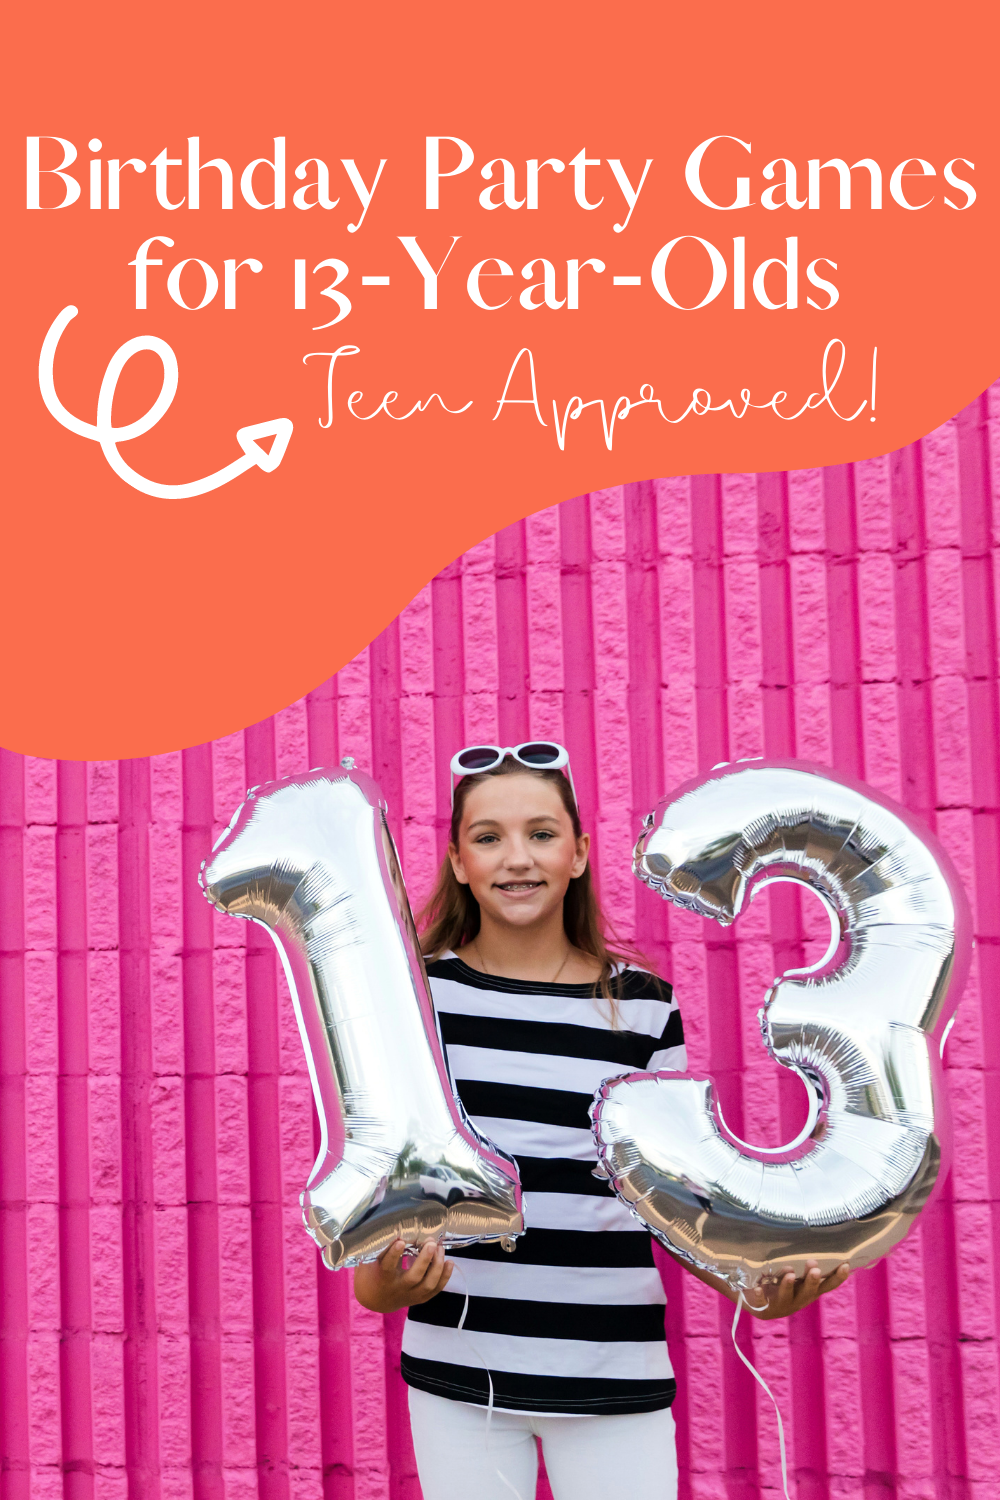 Fun Party Games for 13 Year Olds Teen Approved!